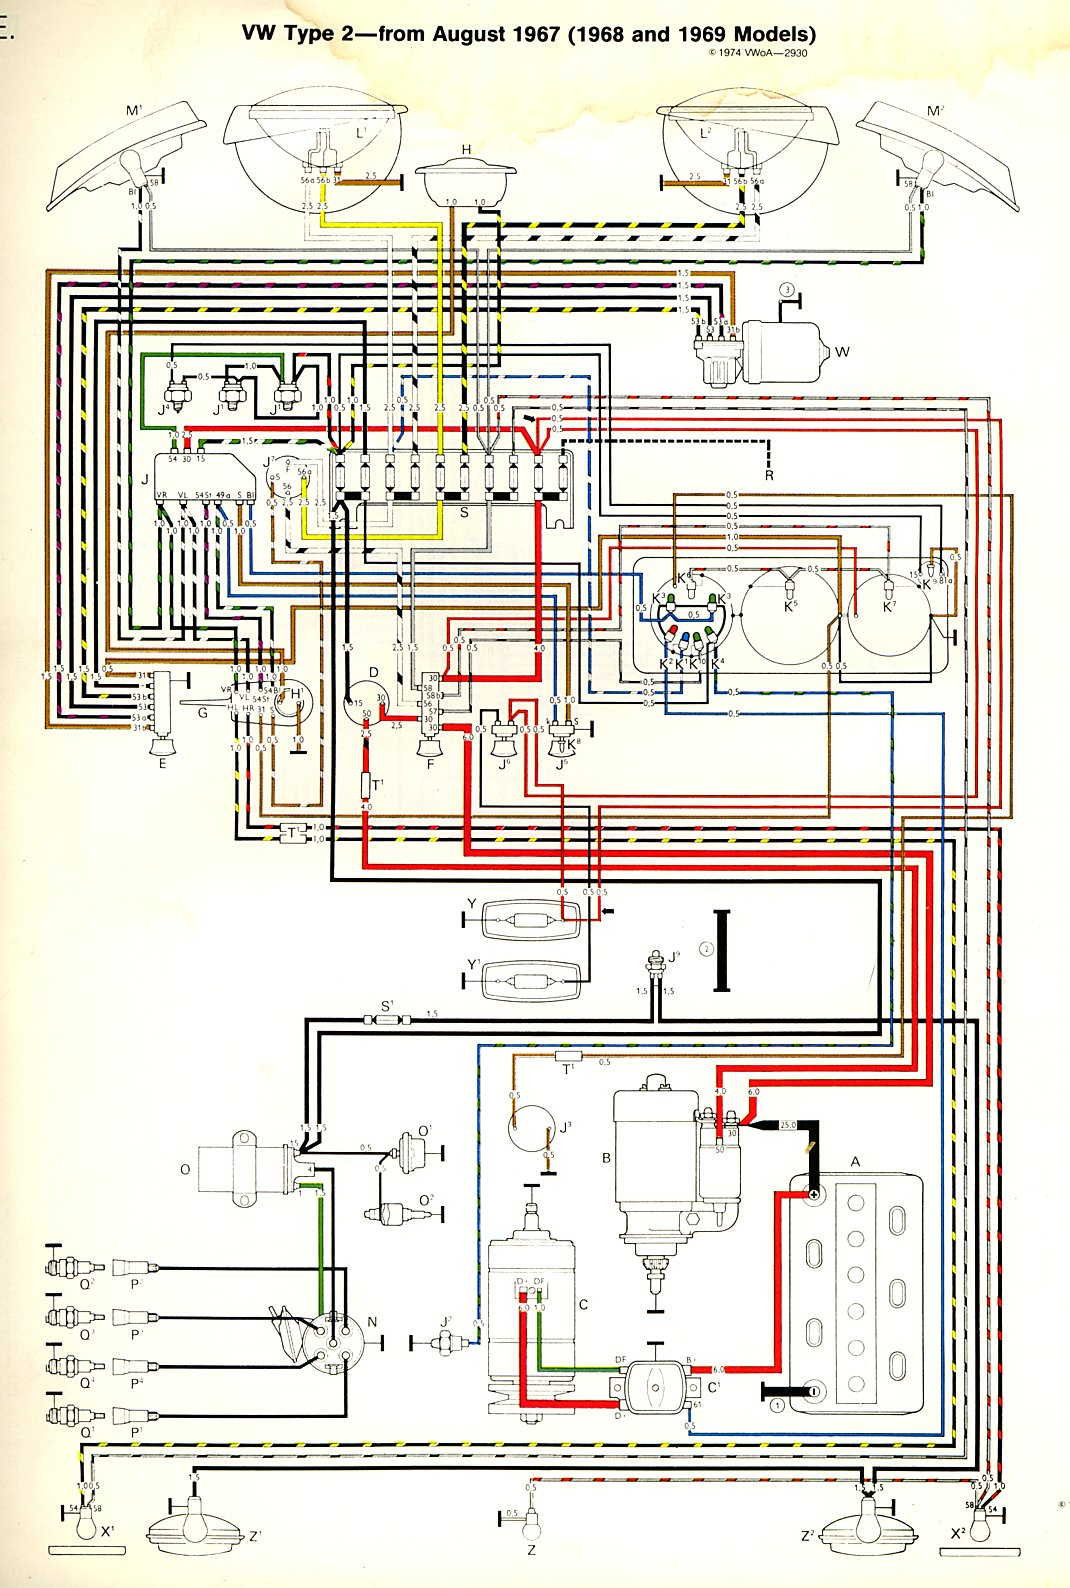 baybus_6869a 74 vw bug wiring diagram cardboard tube support diagram \u2022 free Wiring Harness Diagram at mifinder.co